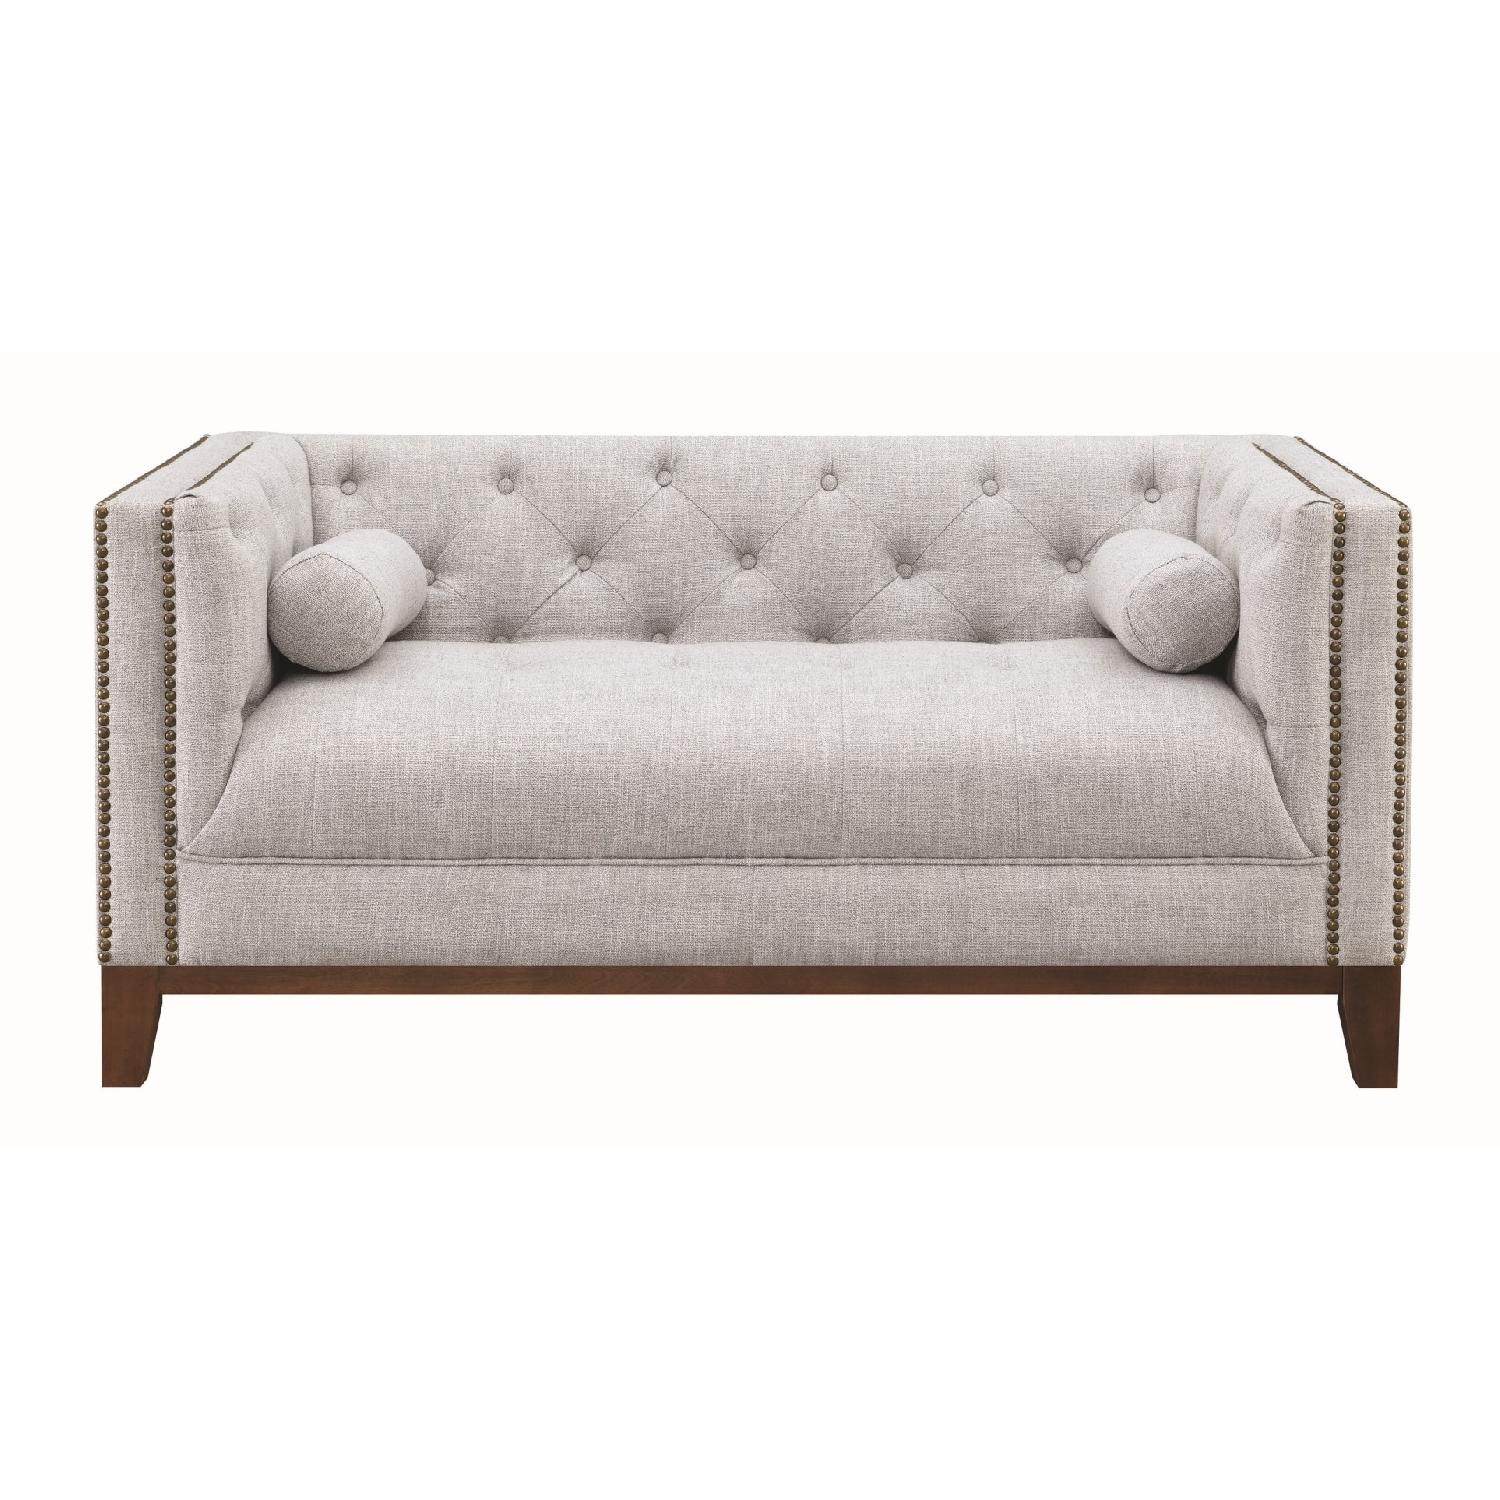 Modern Style Loveseat w/ Tufted Buttons & Nailhead Accent - image-2